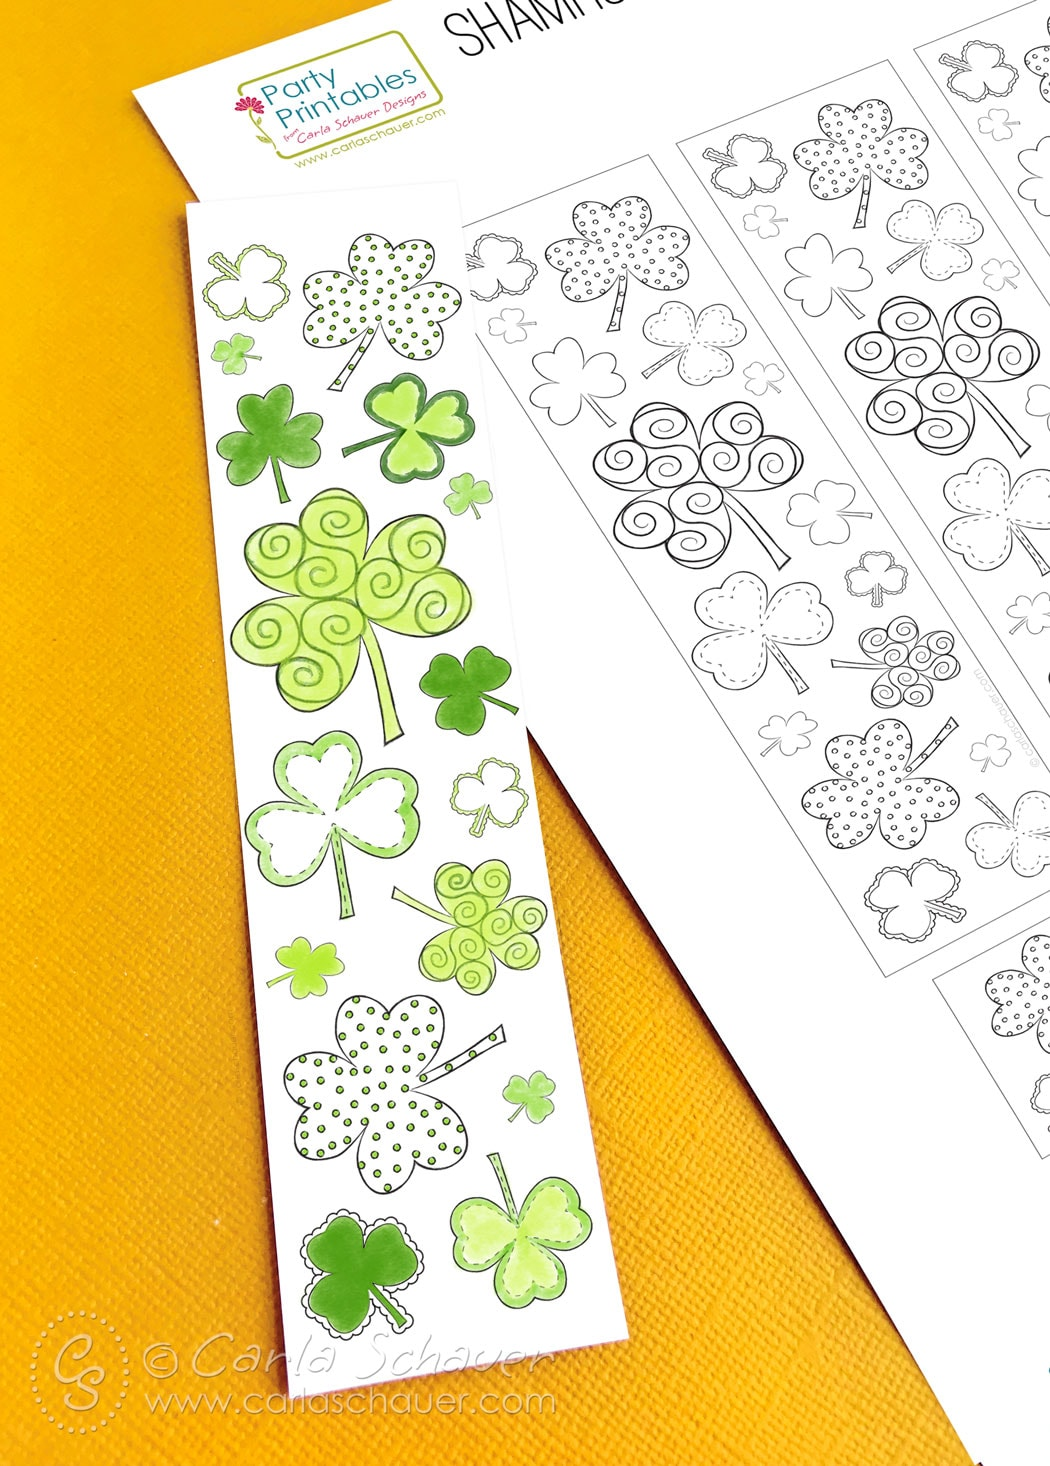 Colored shamrock printable bookmark and sheet on yellow background.